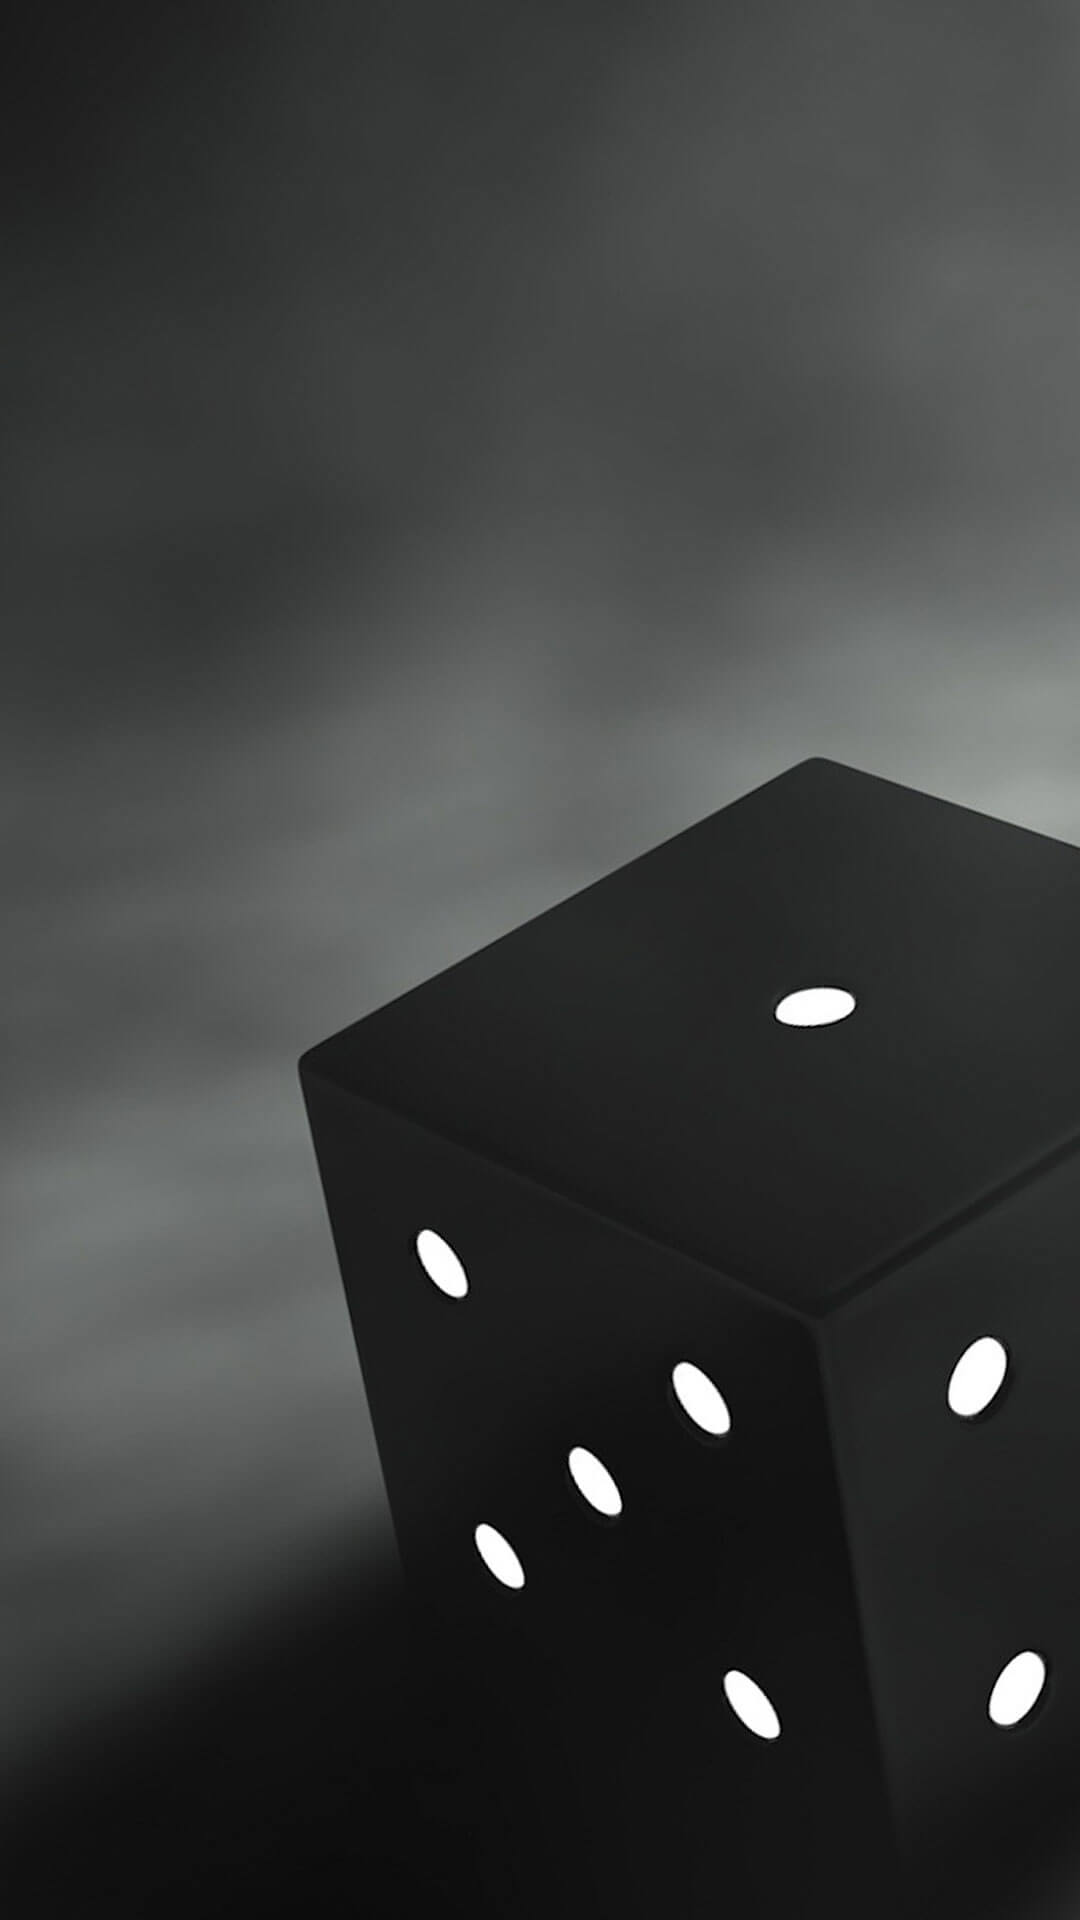 Wallpaperwiki Black Dice IPhone 6 Wallpaper Tumblr PIC WPD0011581